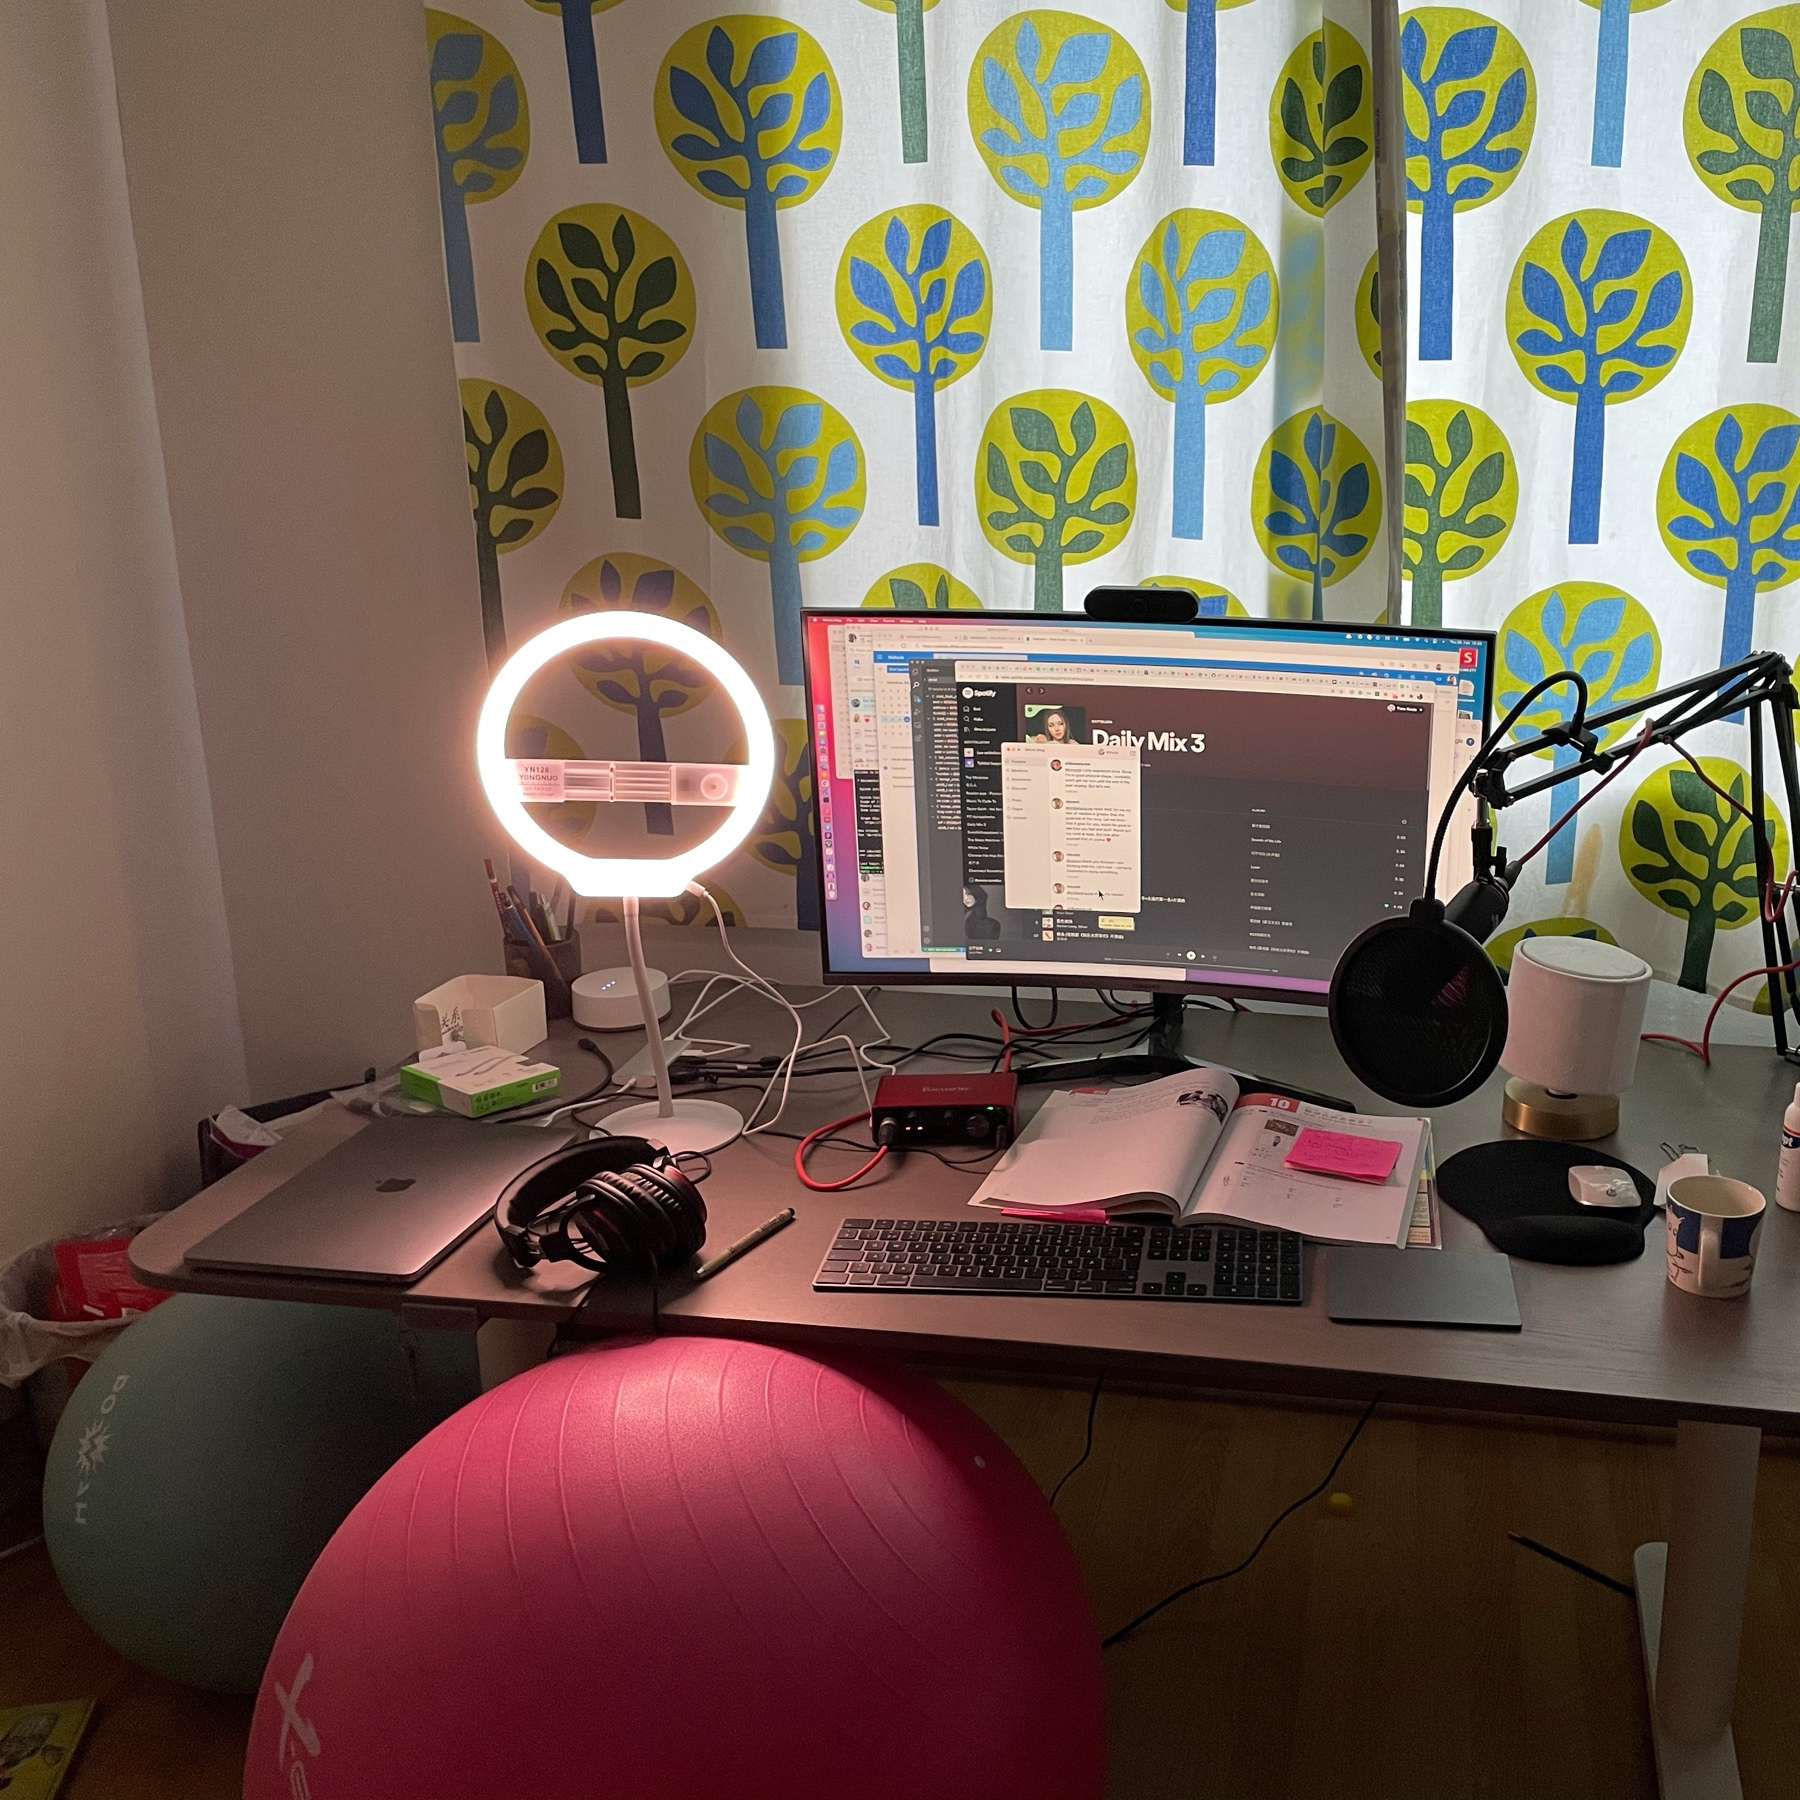 pink ball as a seat, computer desk, assorted computing stuff, microphone and a textbook